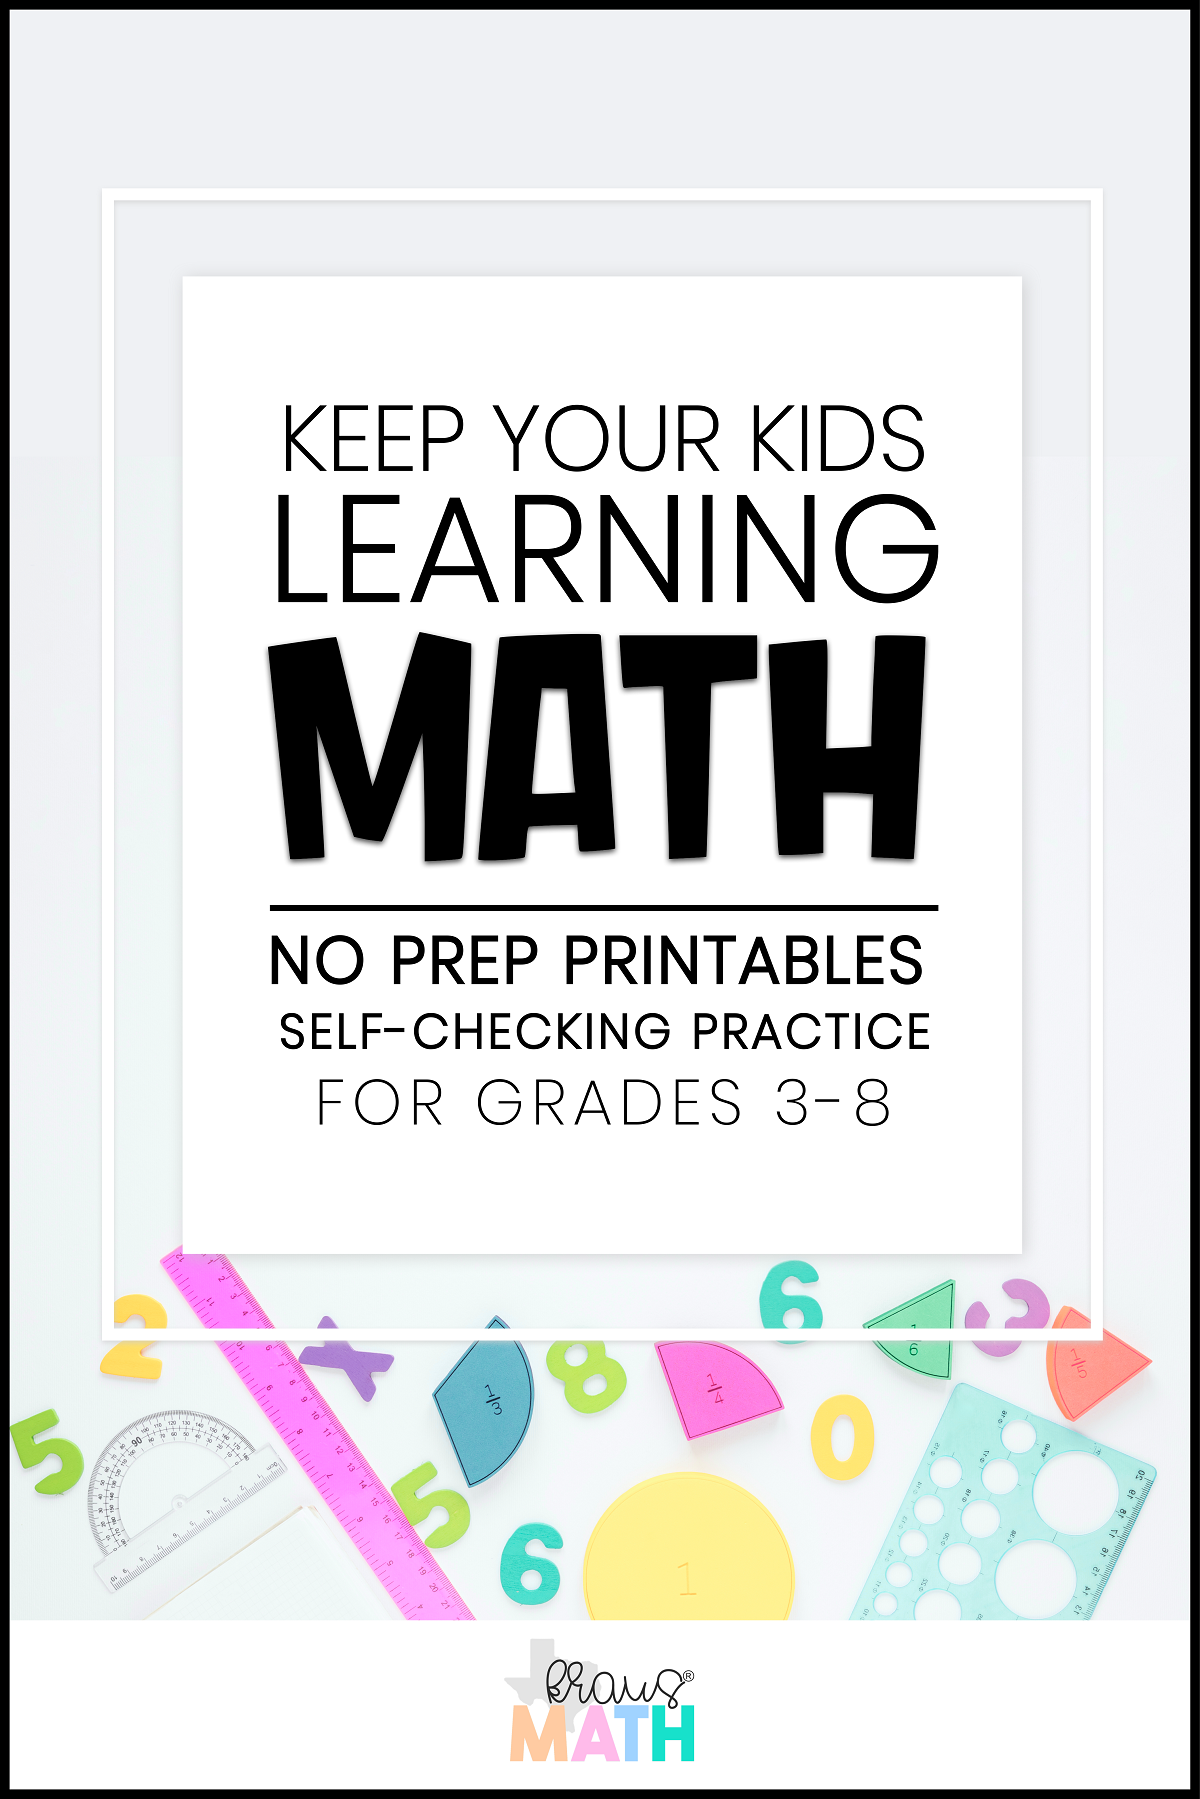 At Home Learning Archives Kraus Math Math Packets Learning Math Math [ 1799 x 1200 Pixel ]